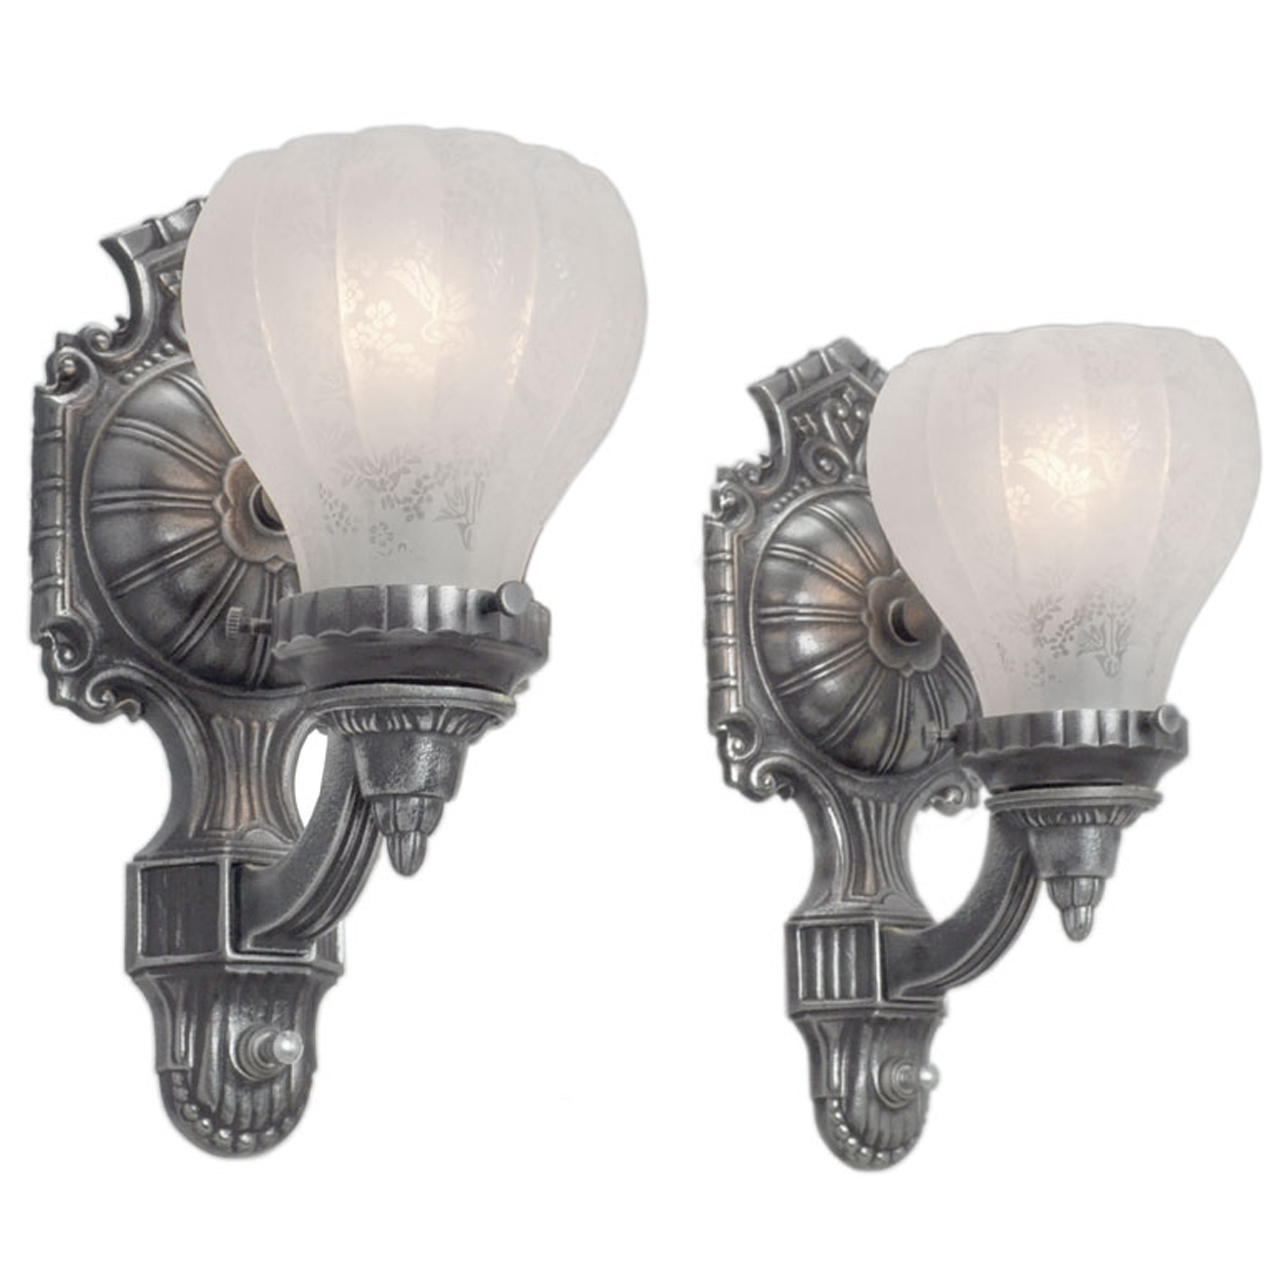 Antique Edwardian Style Pair of Pewter Color Wall Sconces ... on Vintage Wall Sconces id=32687